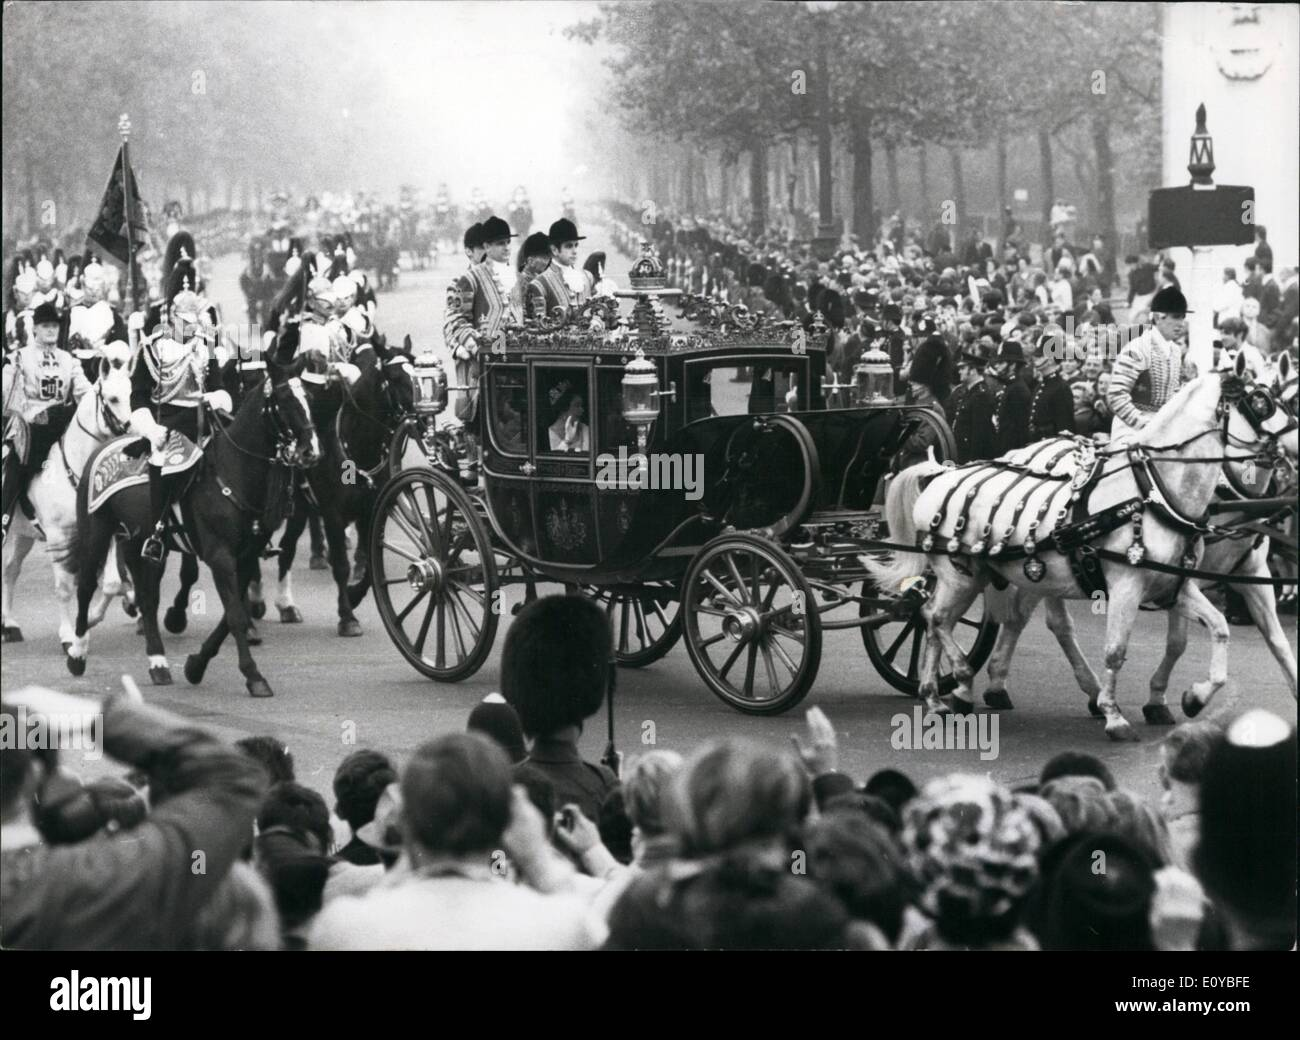 Oct. 10, 1969 - State Opening Of Parliament: Photo Shows The scene as the Irish State Coach containing H.M. The Stock Photo